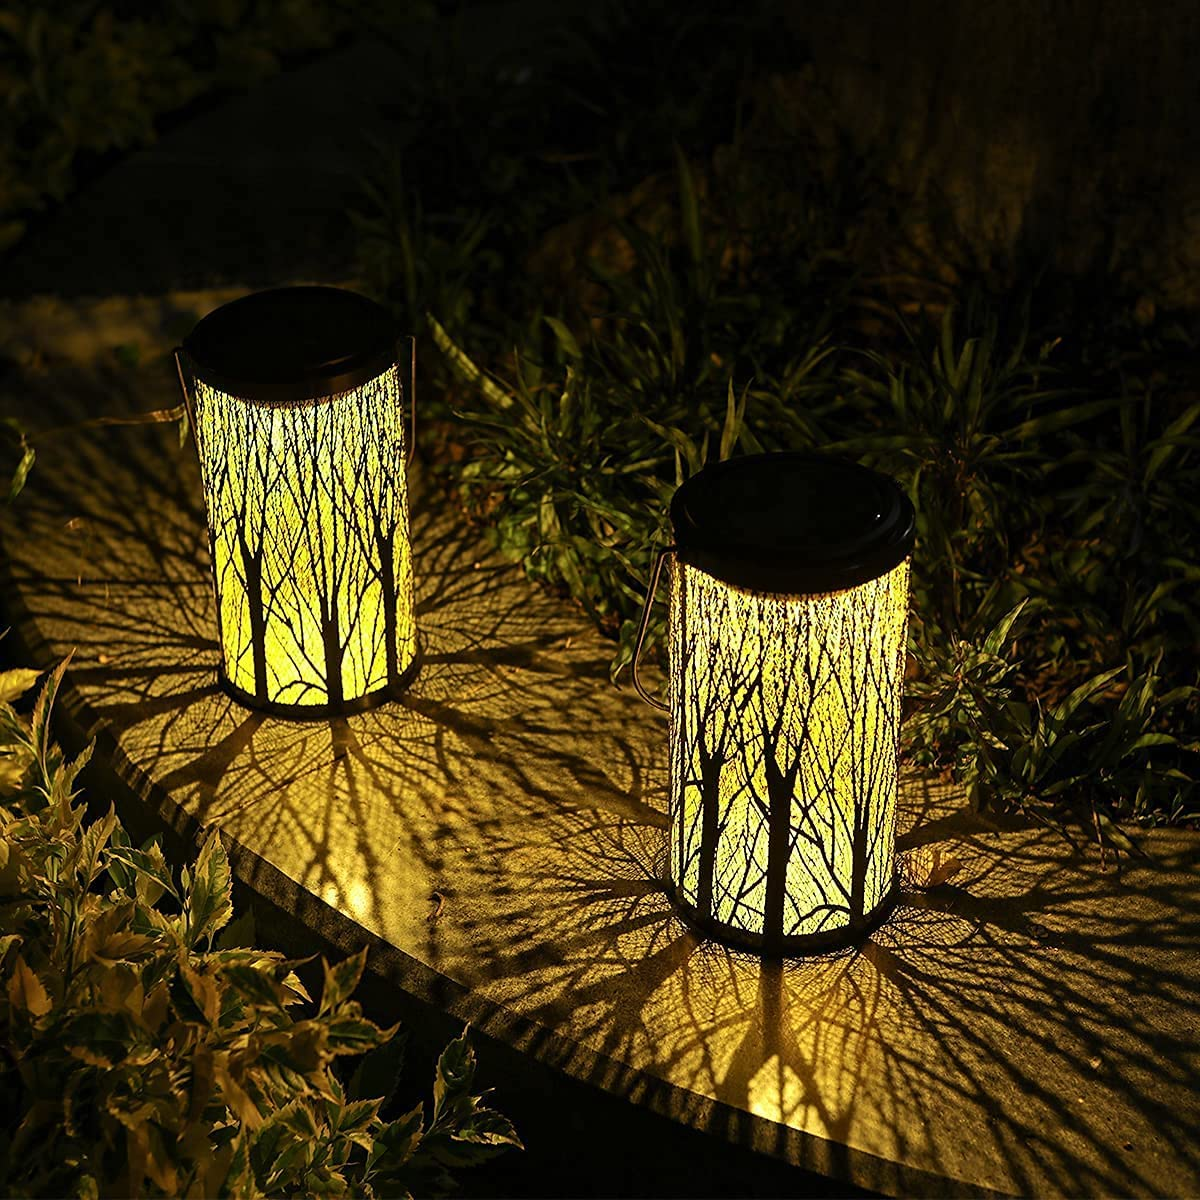 YJFWAL Solar Free Shipping Cheap Bargain Gift Lantern Lights Lig Pathway Outdoor Hanging A surprise price is realized